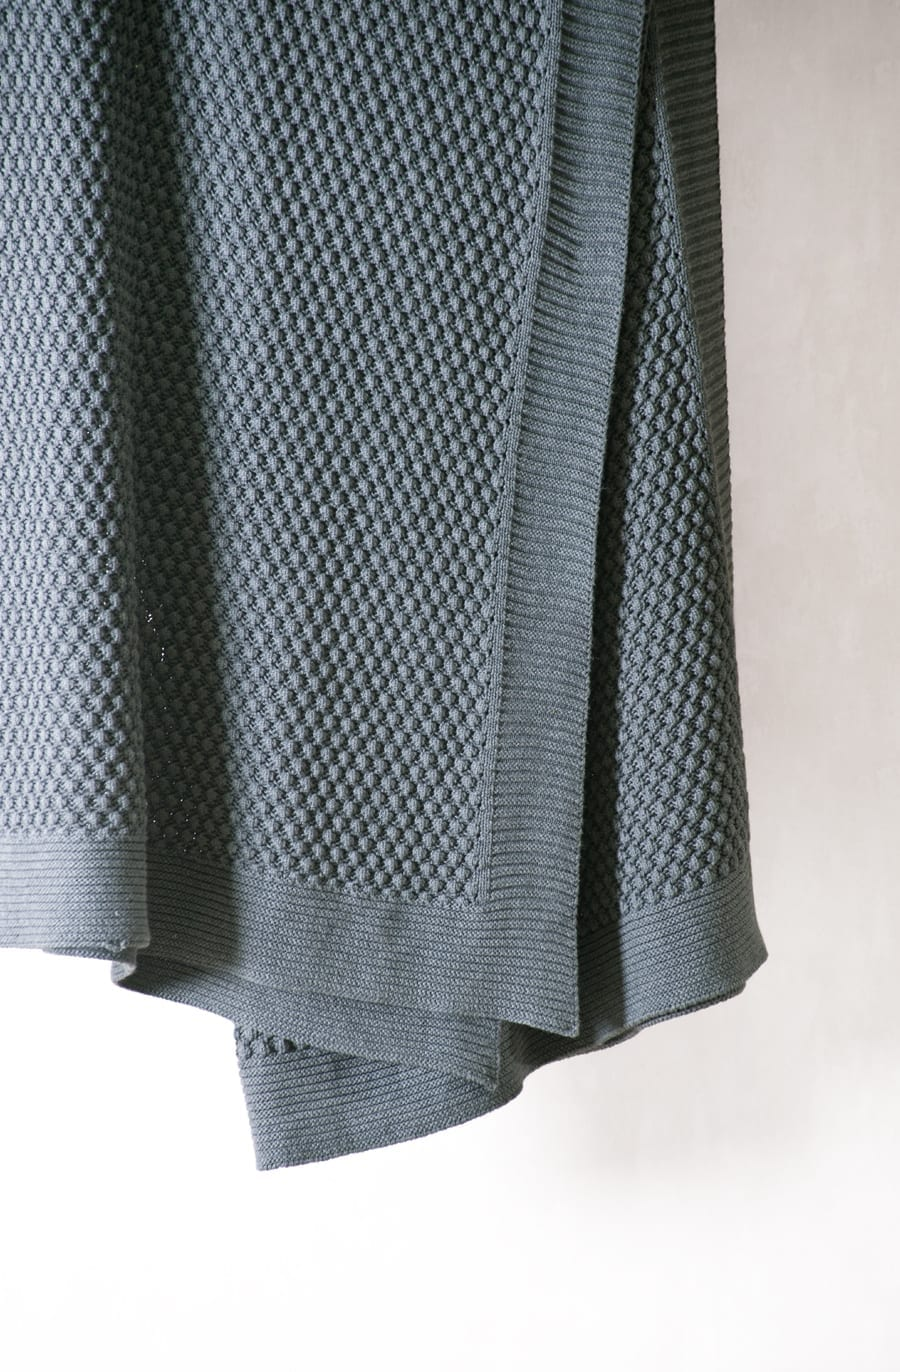 Bianca Lorenne Filato Throw in Charcoal available at McKenzie & Willis